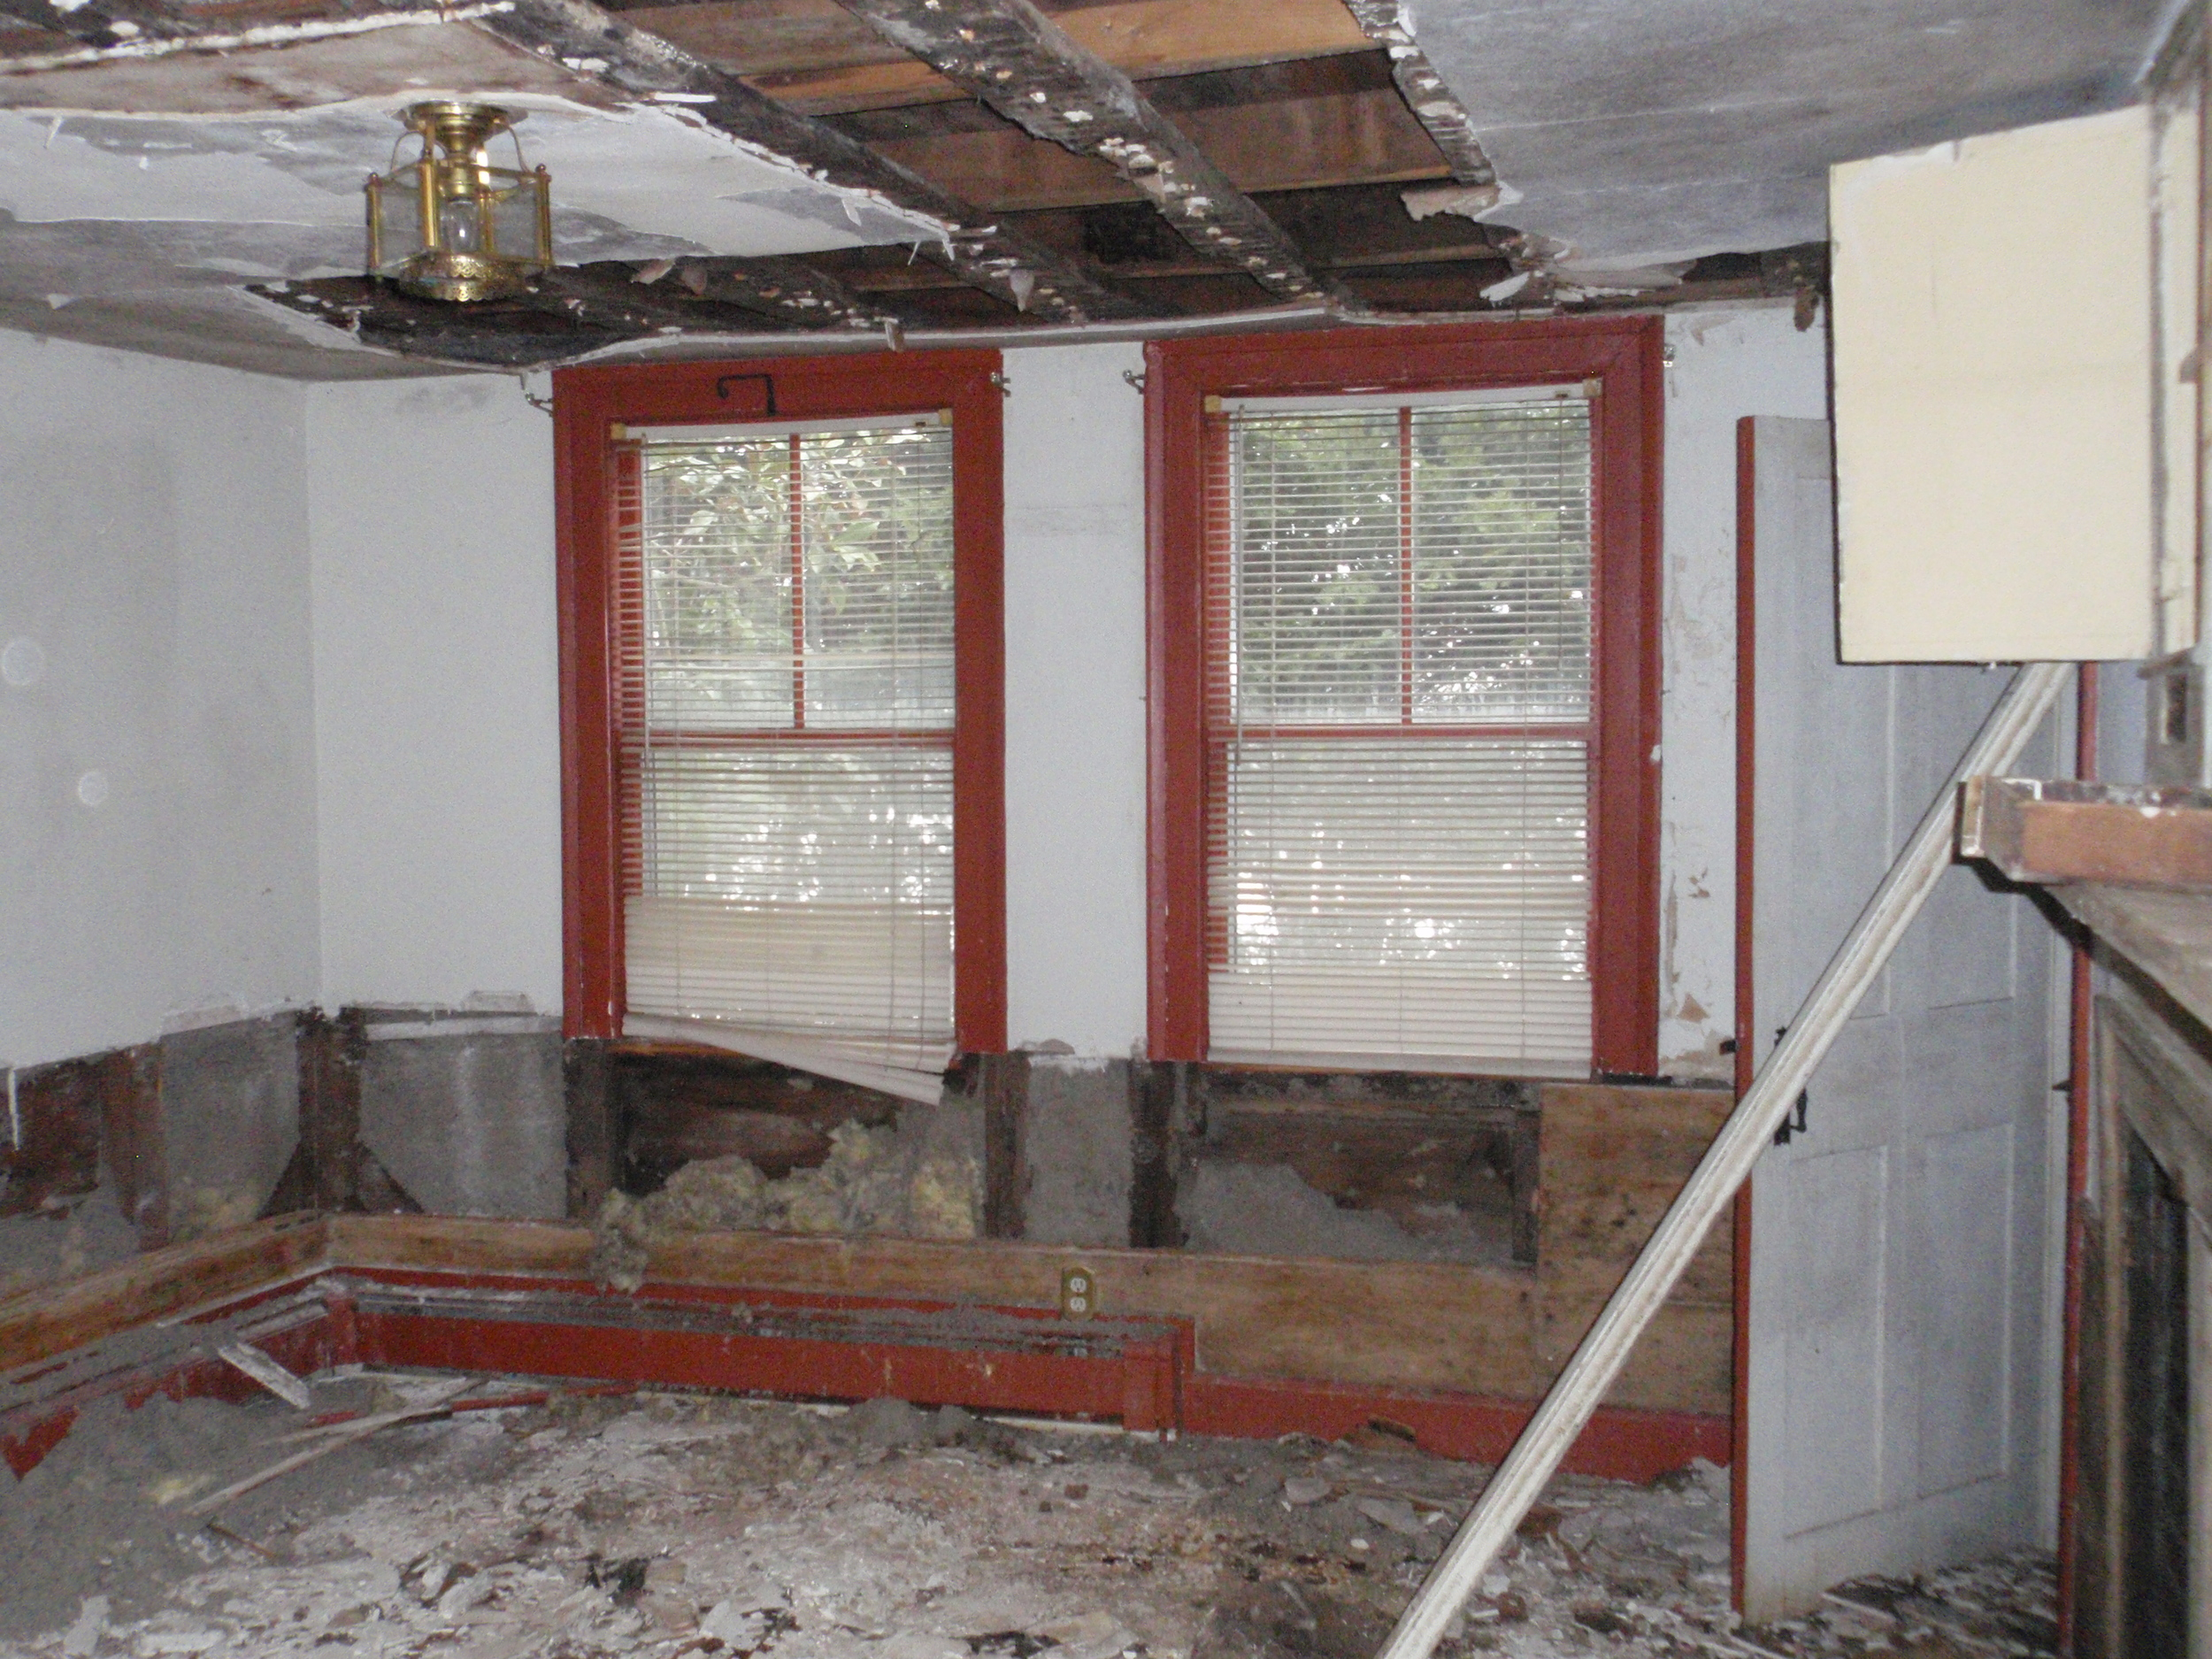 The historic kitchen has seen the most damage in the house. Original paneling has been pulled from the walls and some of the ceiling plaster has been taken down.